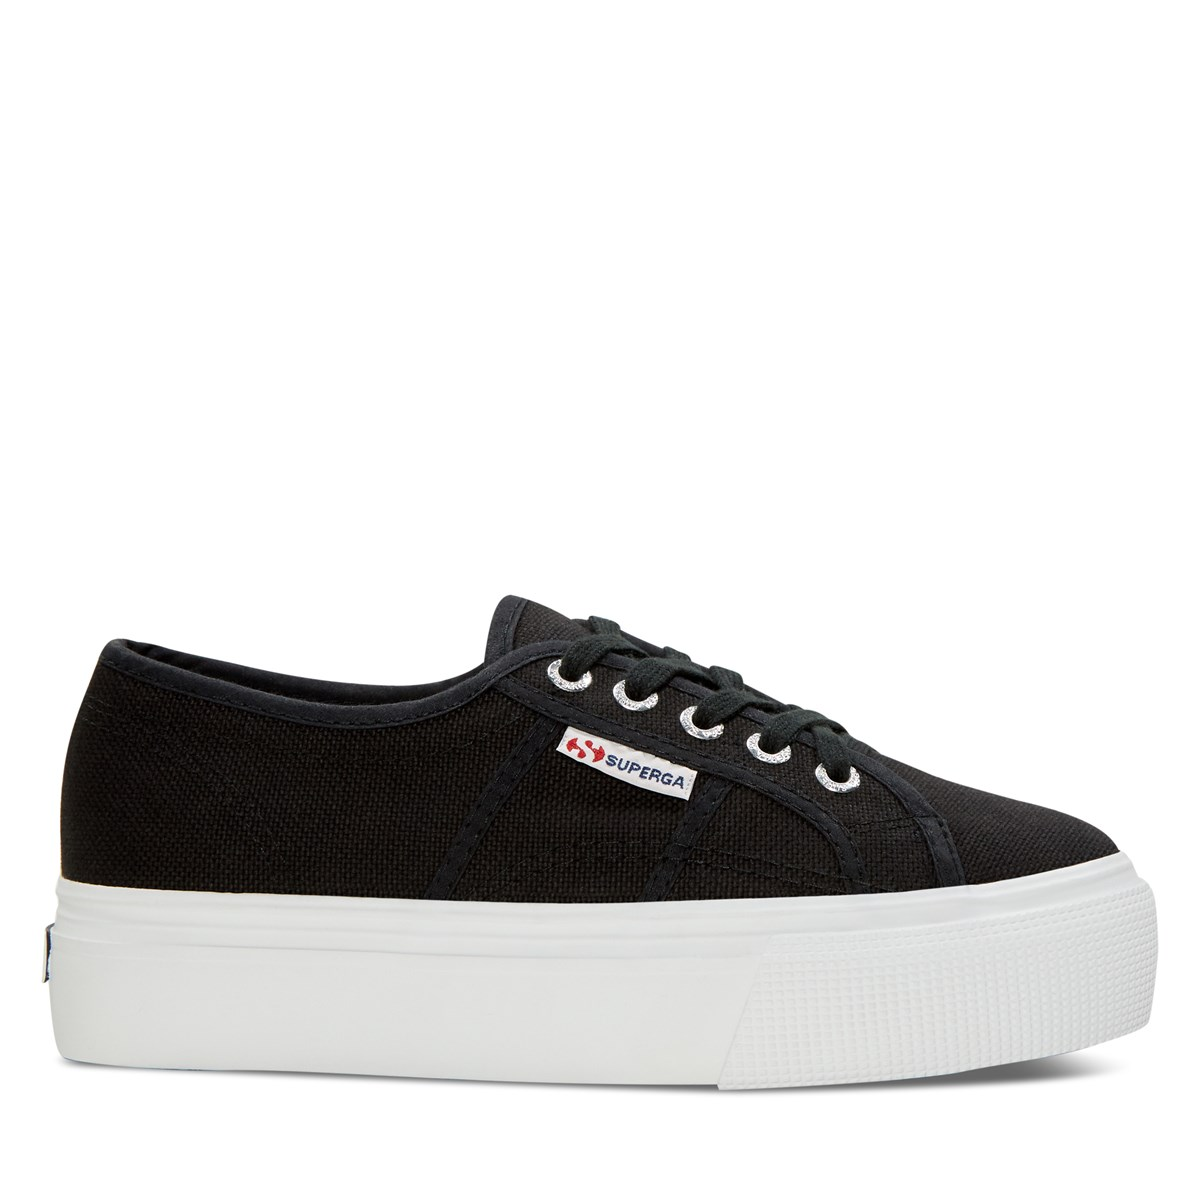 Women's 2790 Platform Sneakers in Black